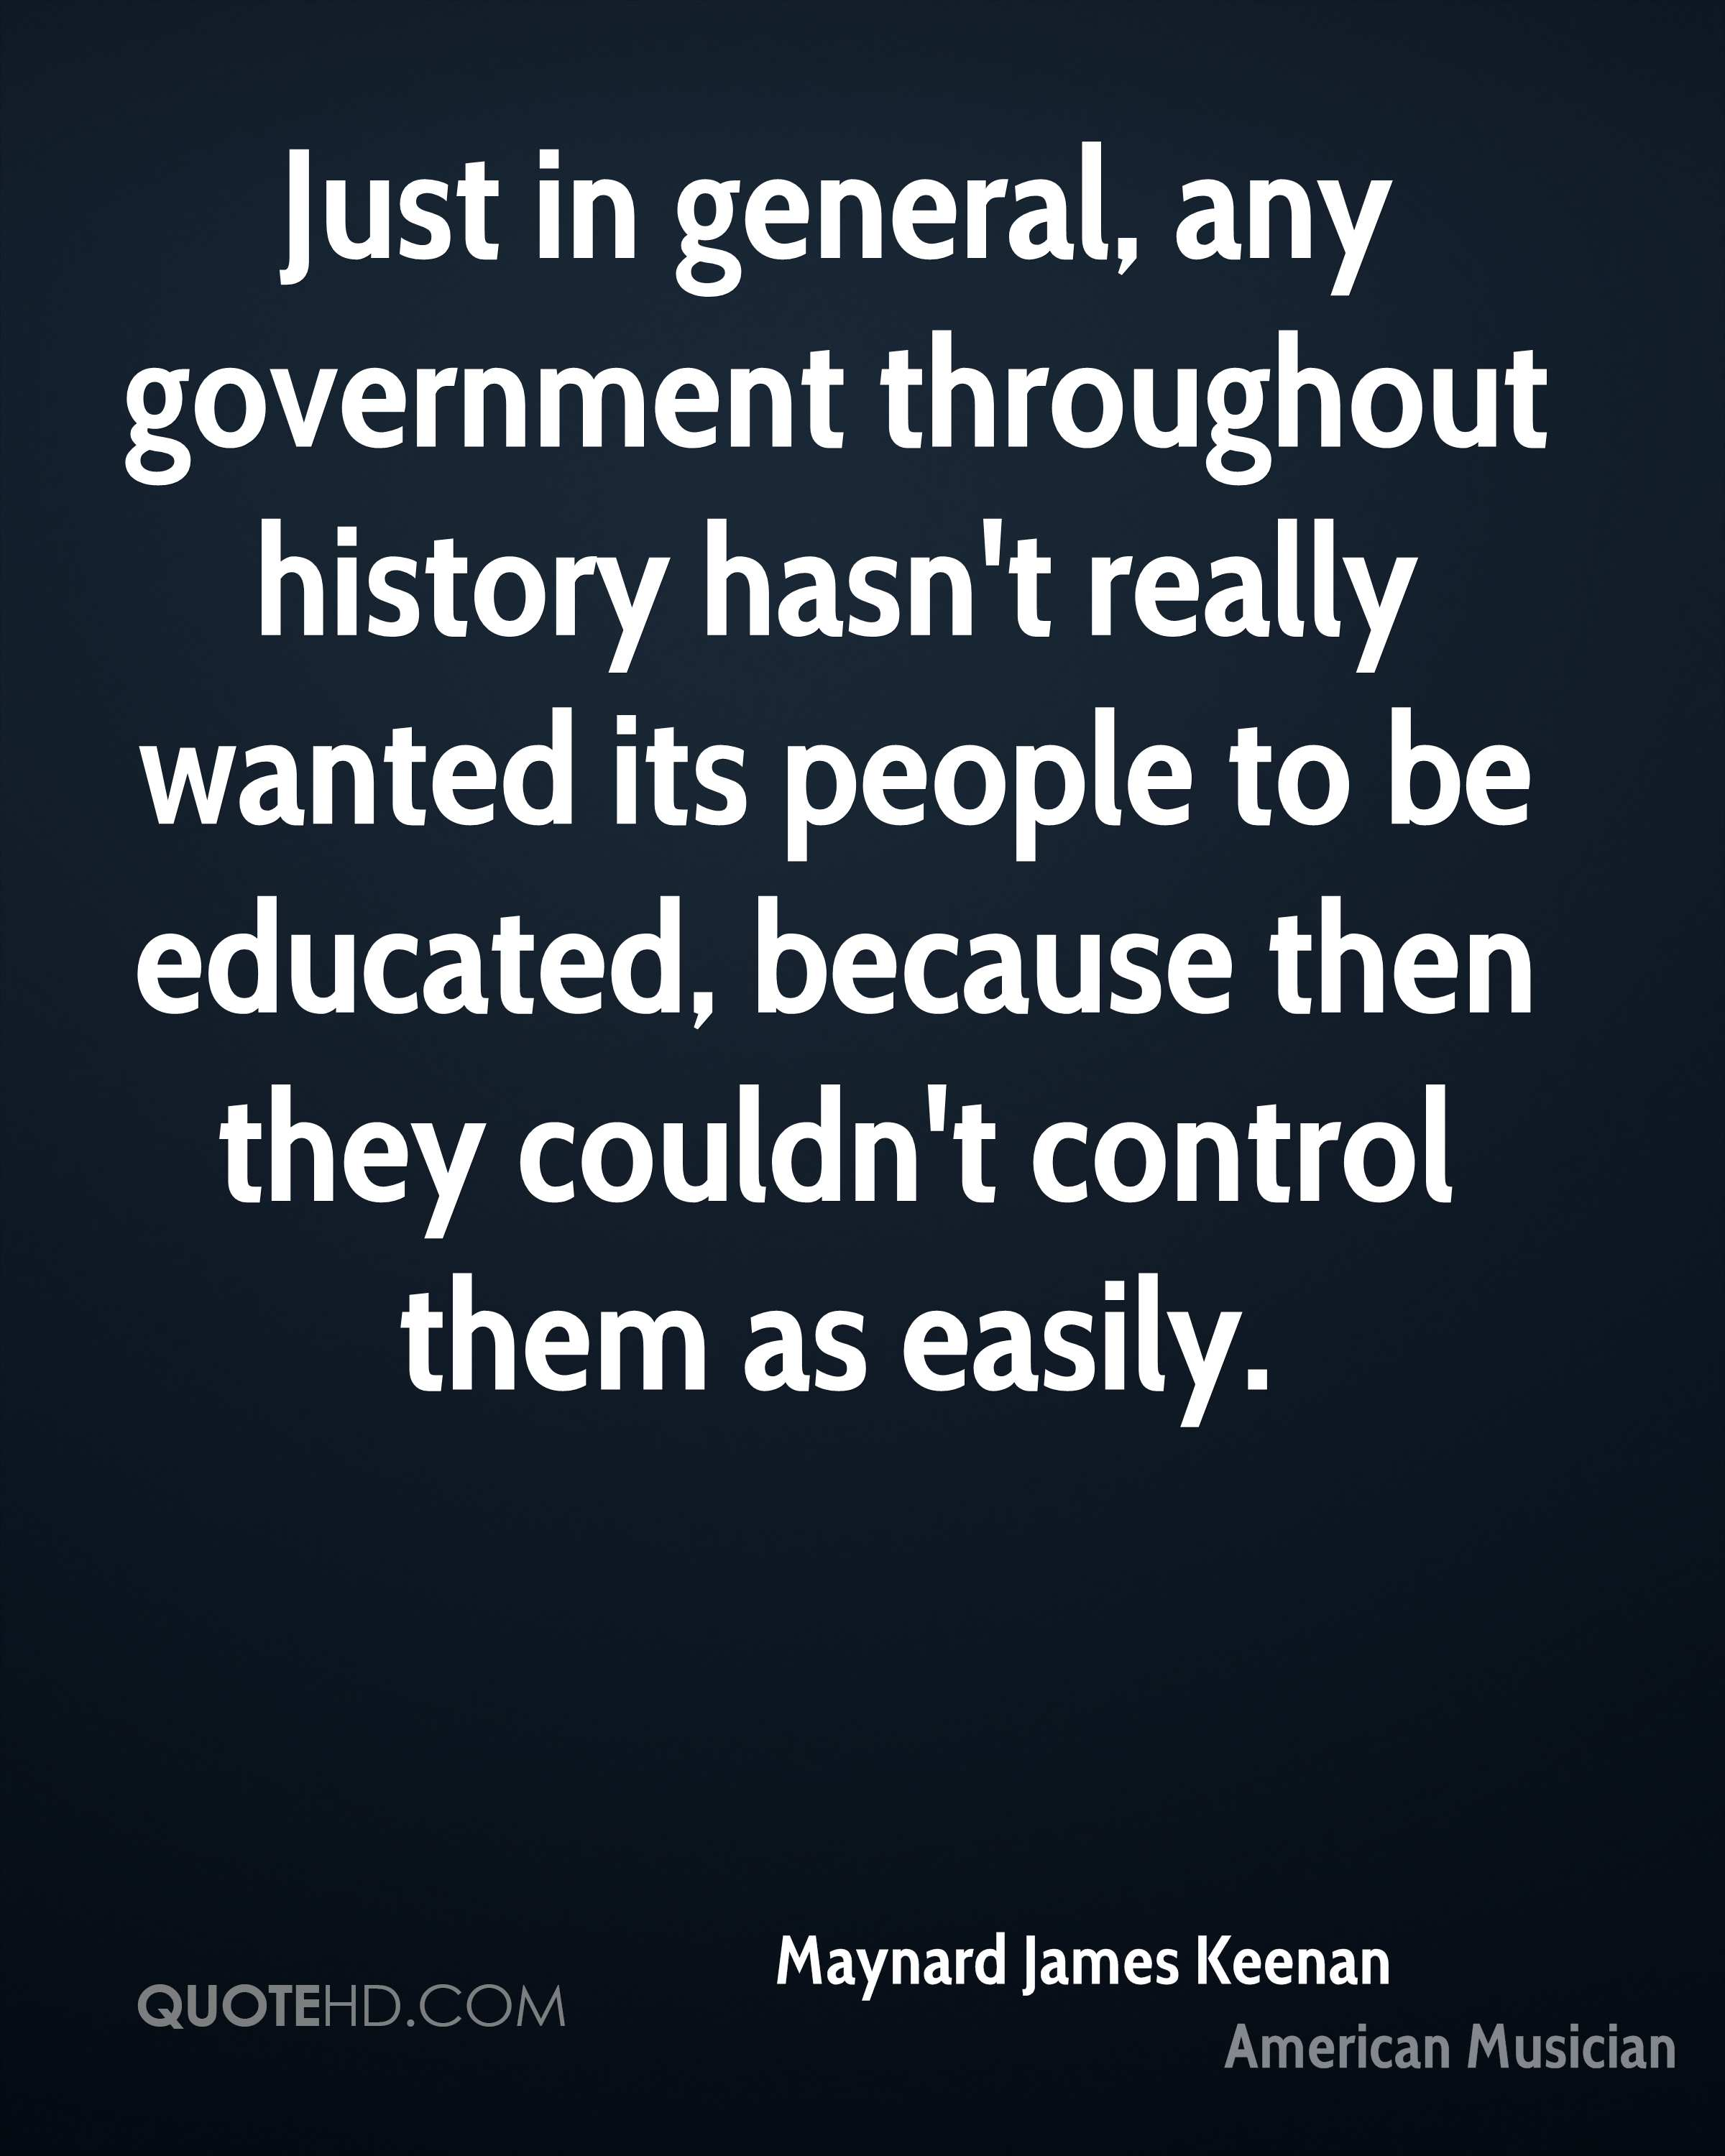 Just in general, any government throughout history hasn't really wanted its people to be educated, because then they couldn't control them as easily.